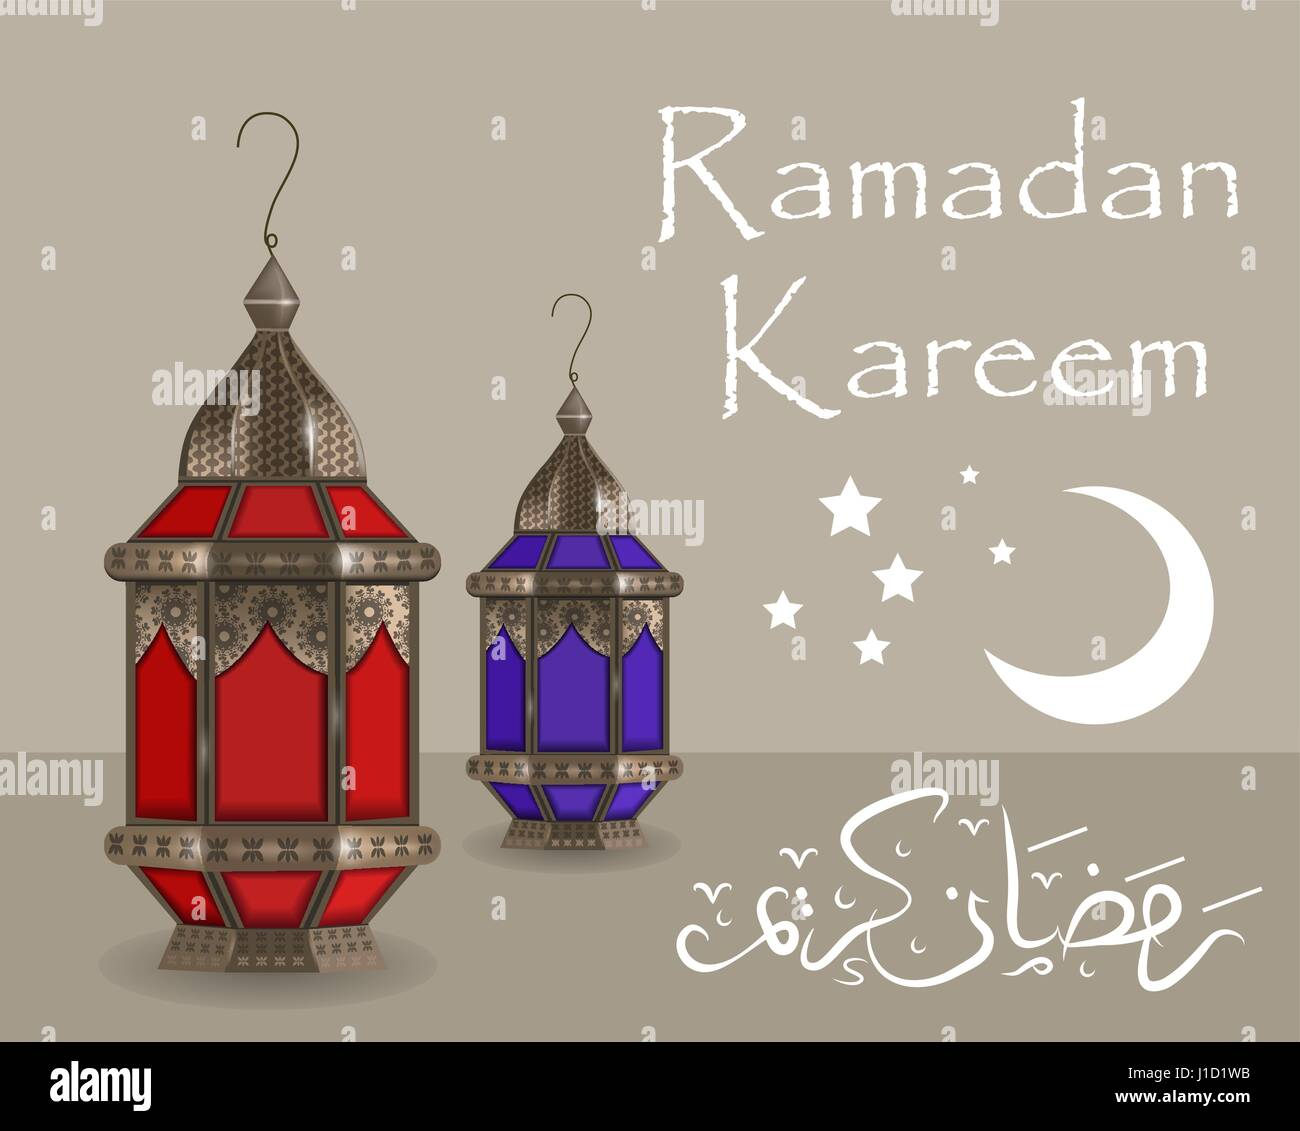 Ramadan Kareem Stock Photos Ramadan Kareem Stock Images Alamy